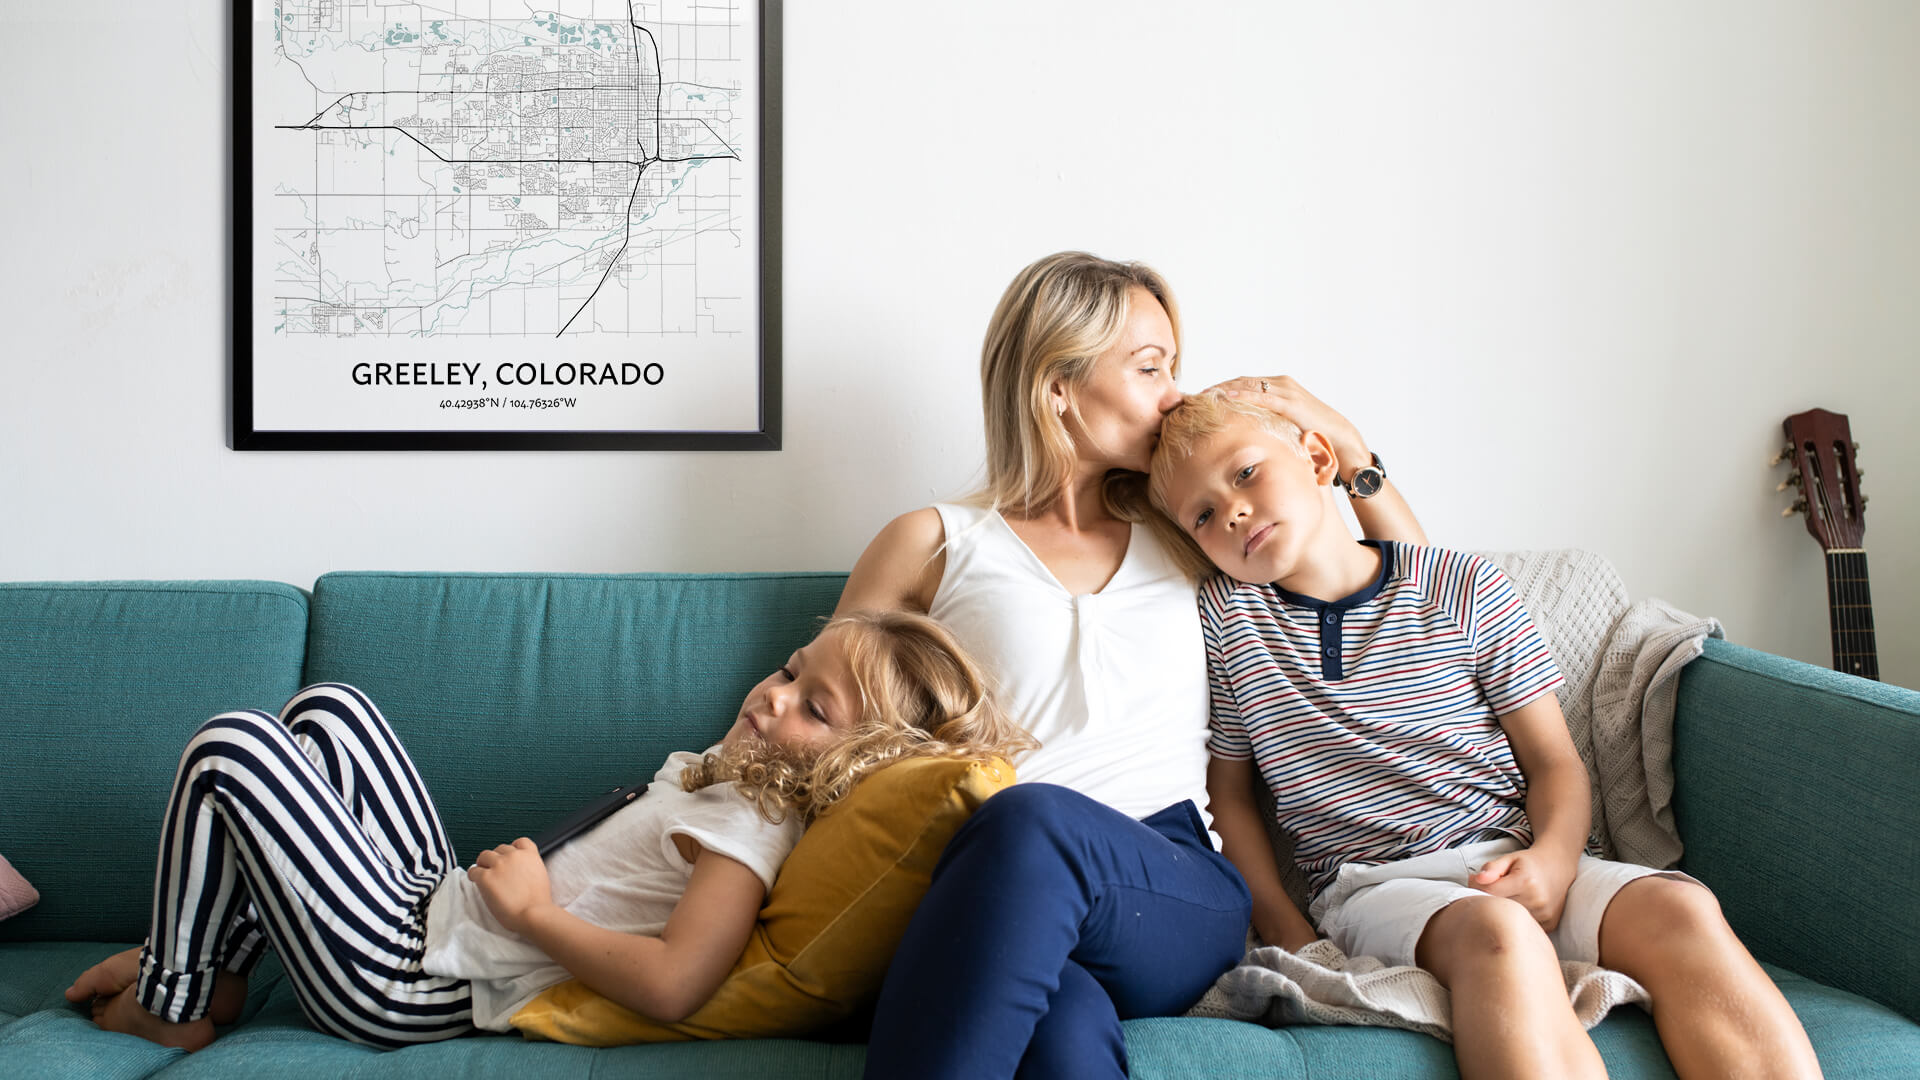 Greeley map poster